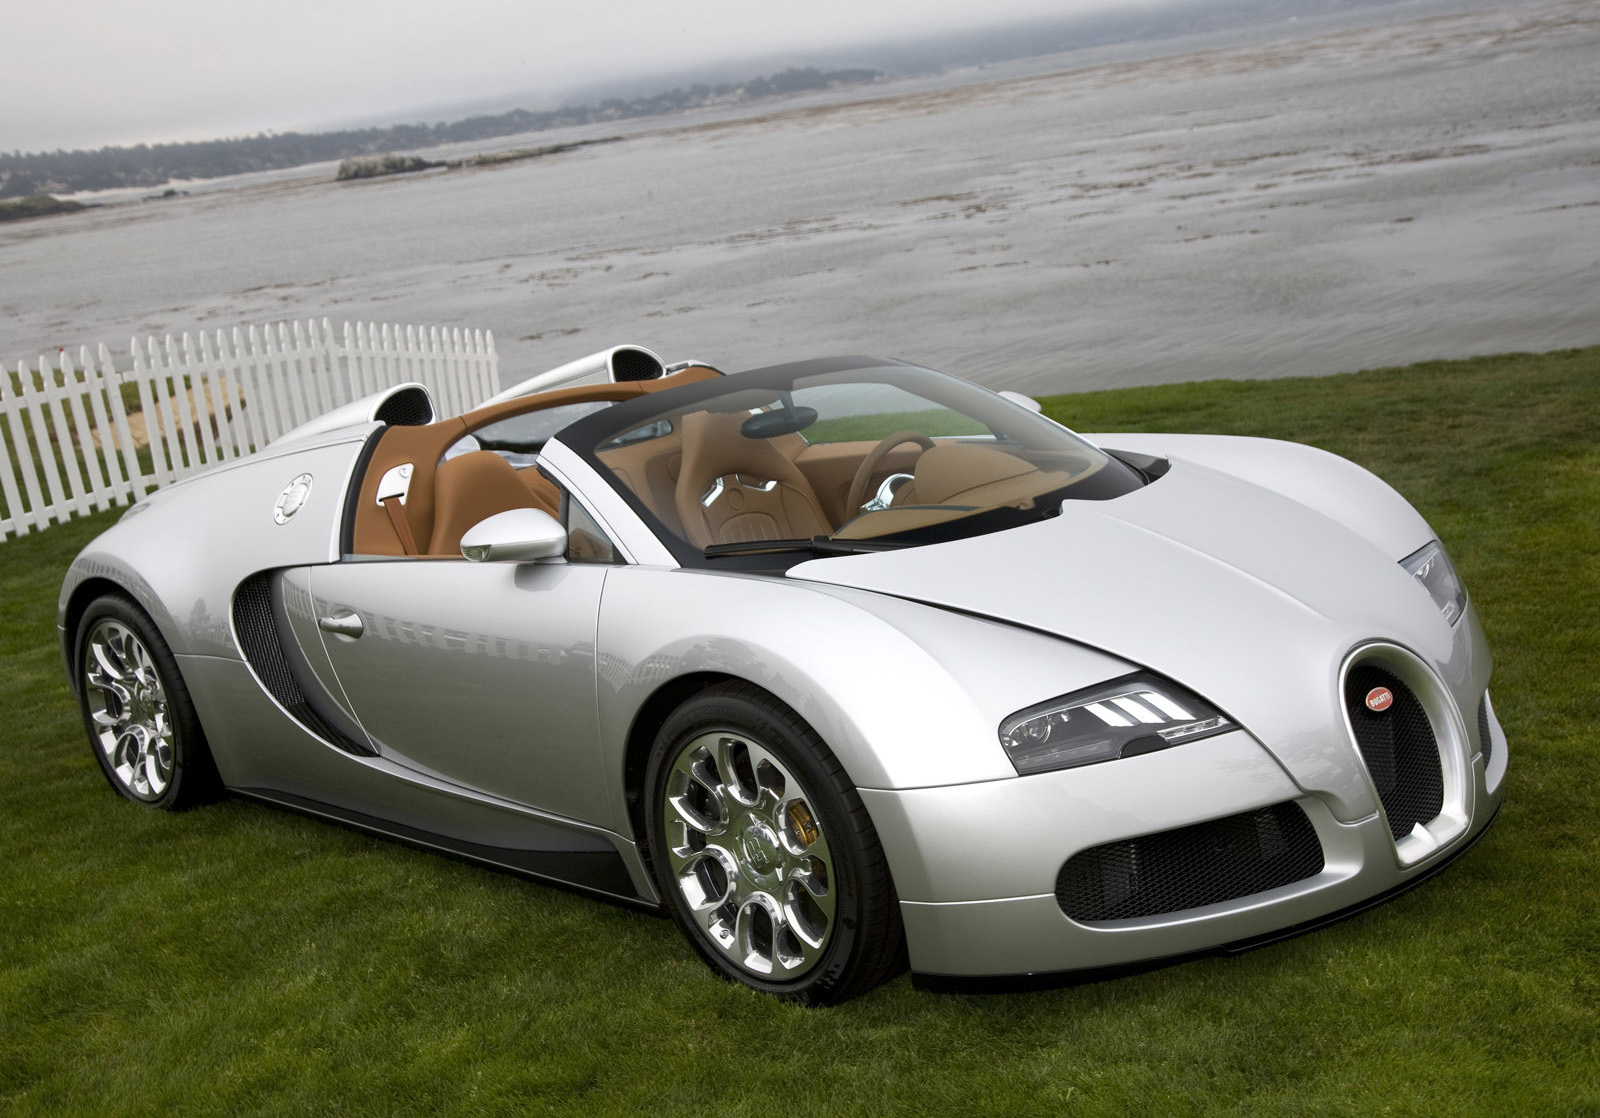 Extreme Machines Bugatti Veyron Launched In India